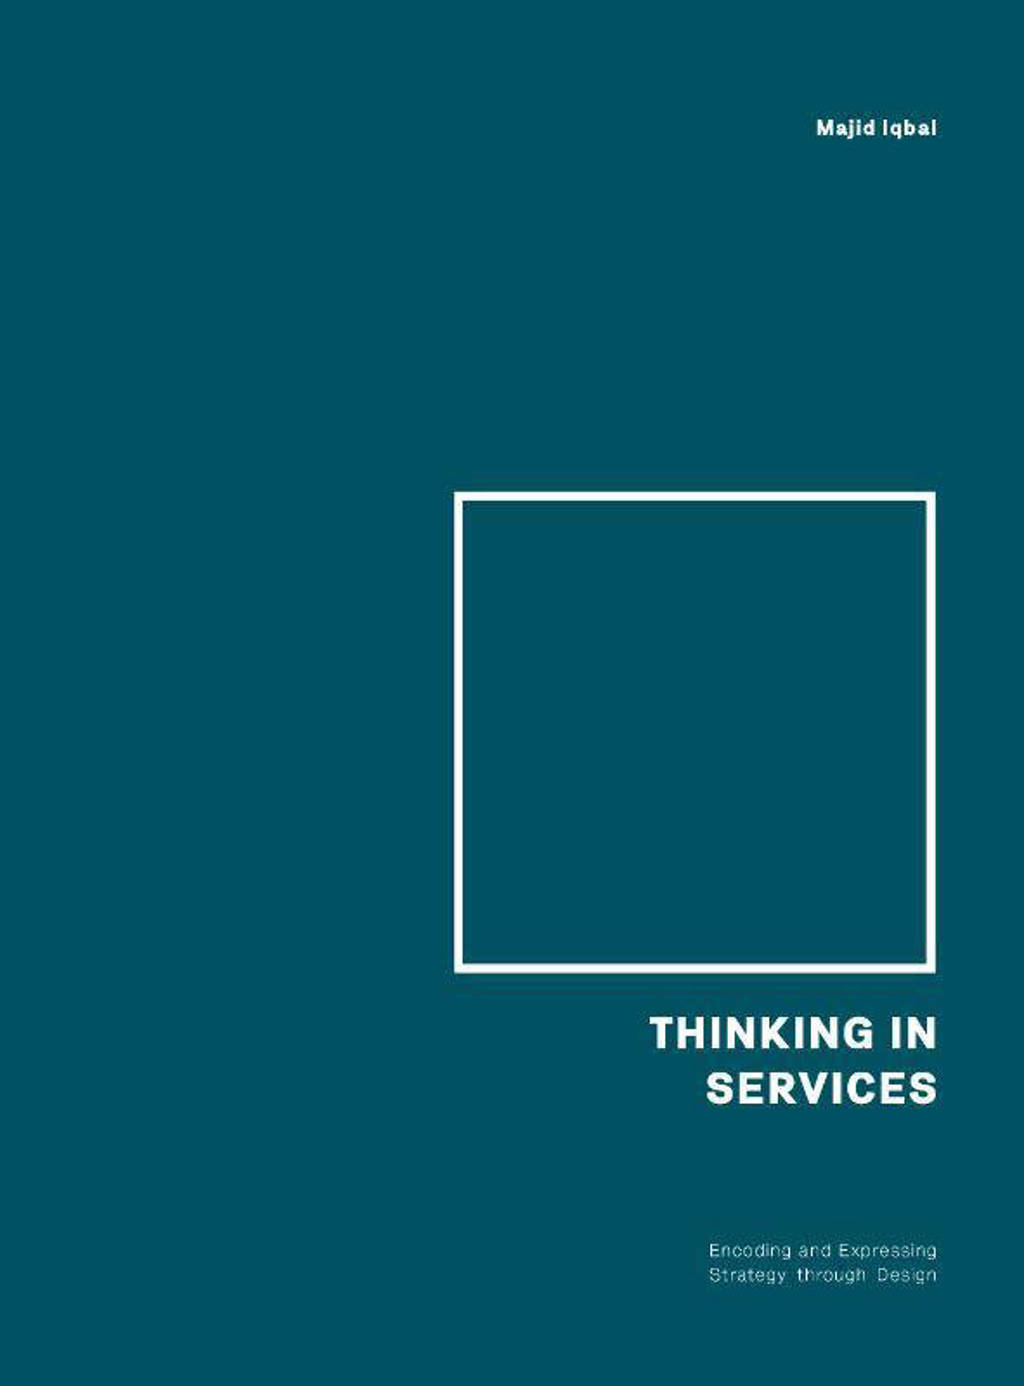 Thinking in Services - Majid Iqbal